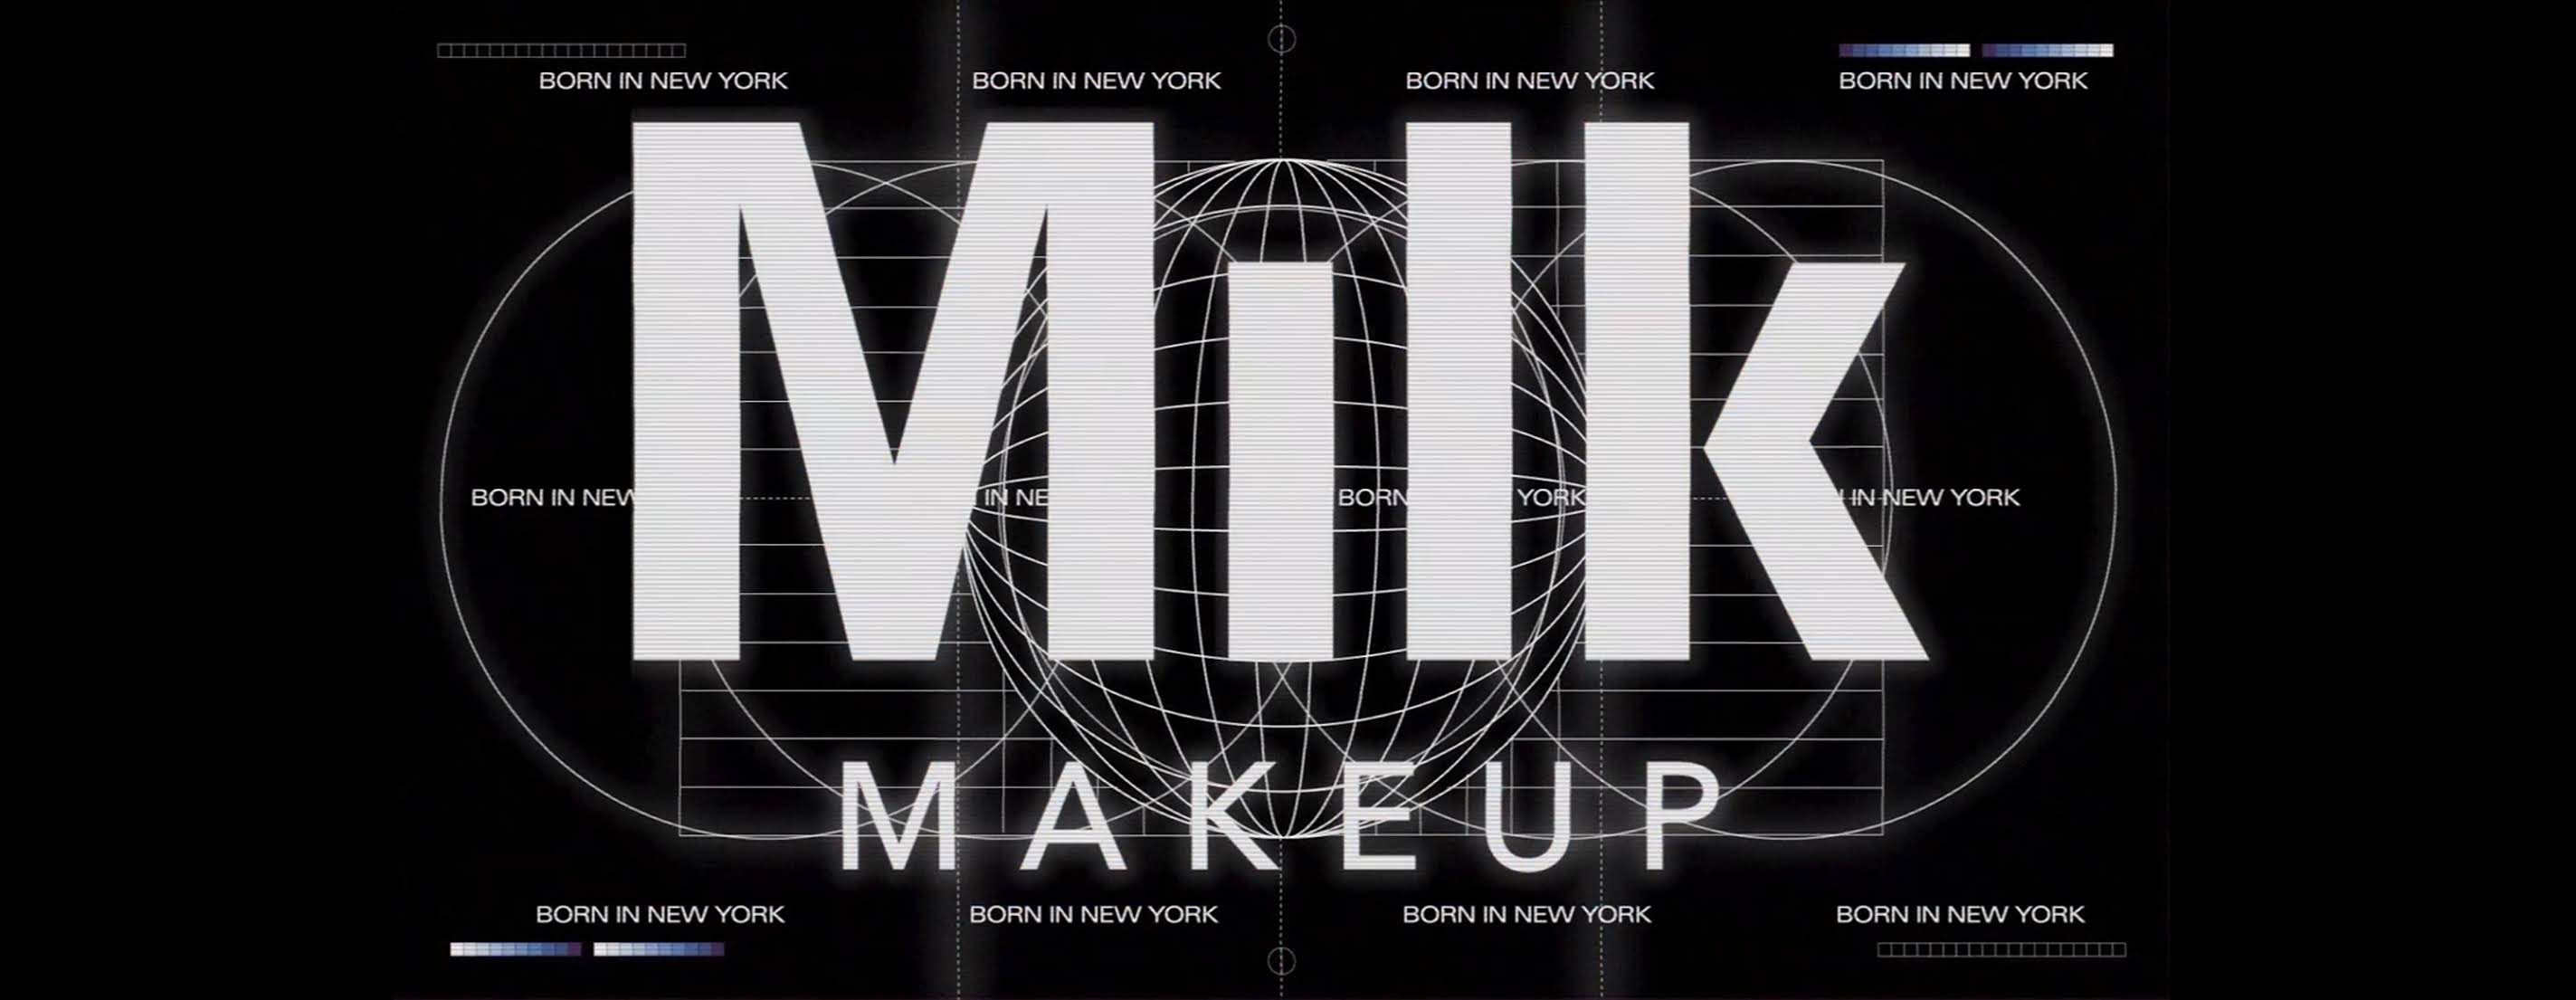 WATCH: Presenting Milk Makeup's Anthem Video